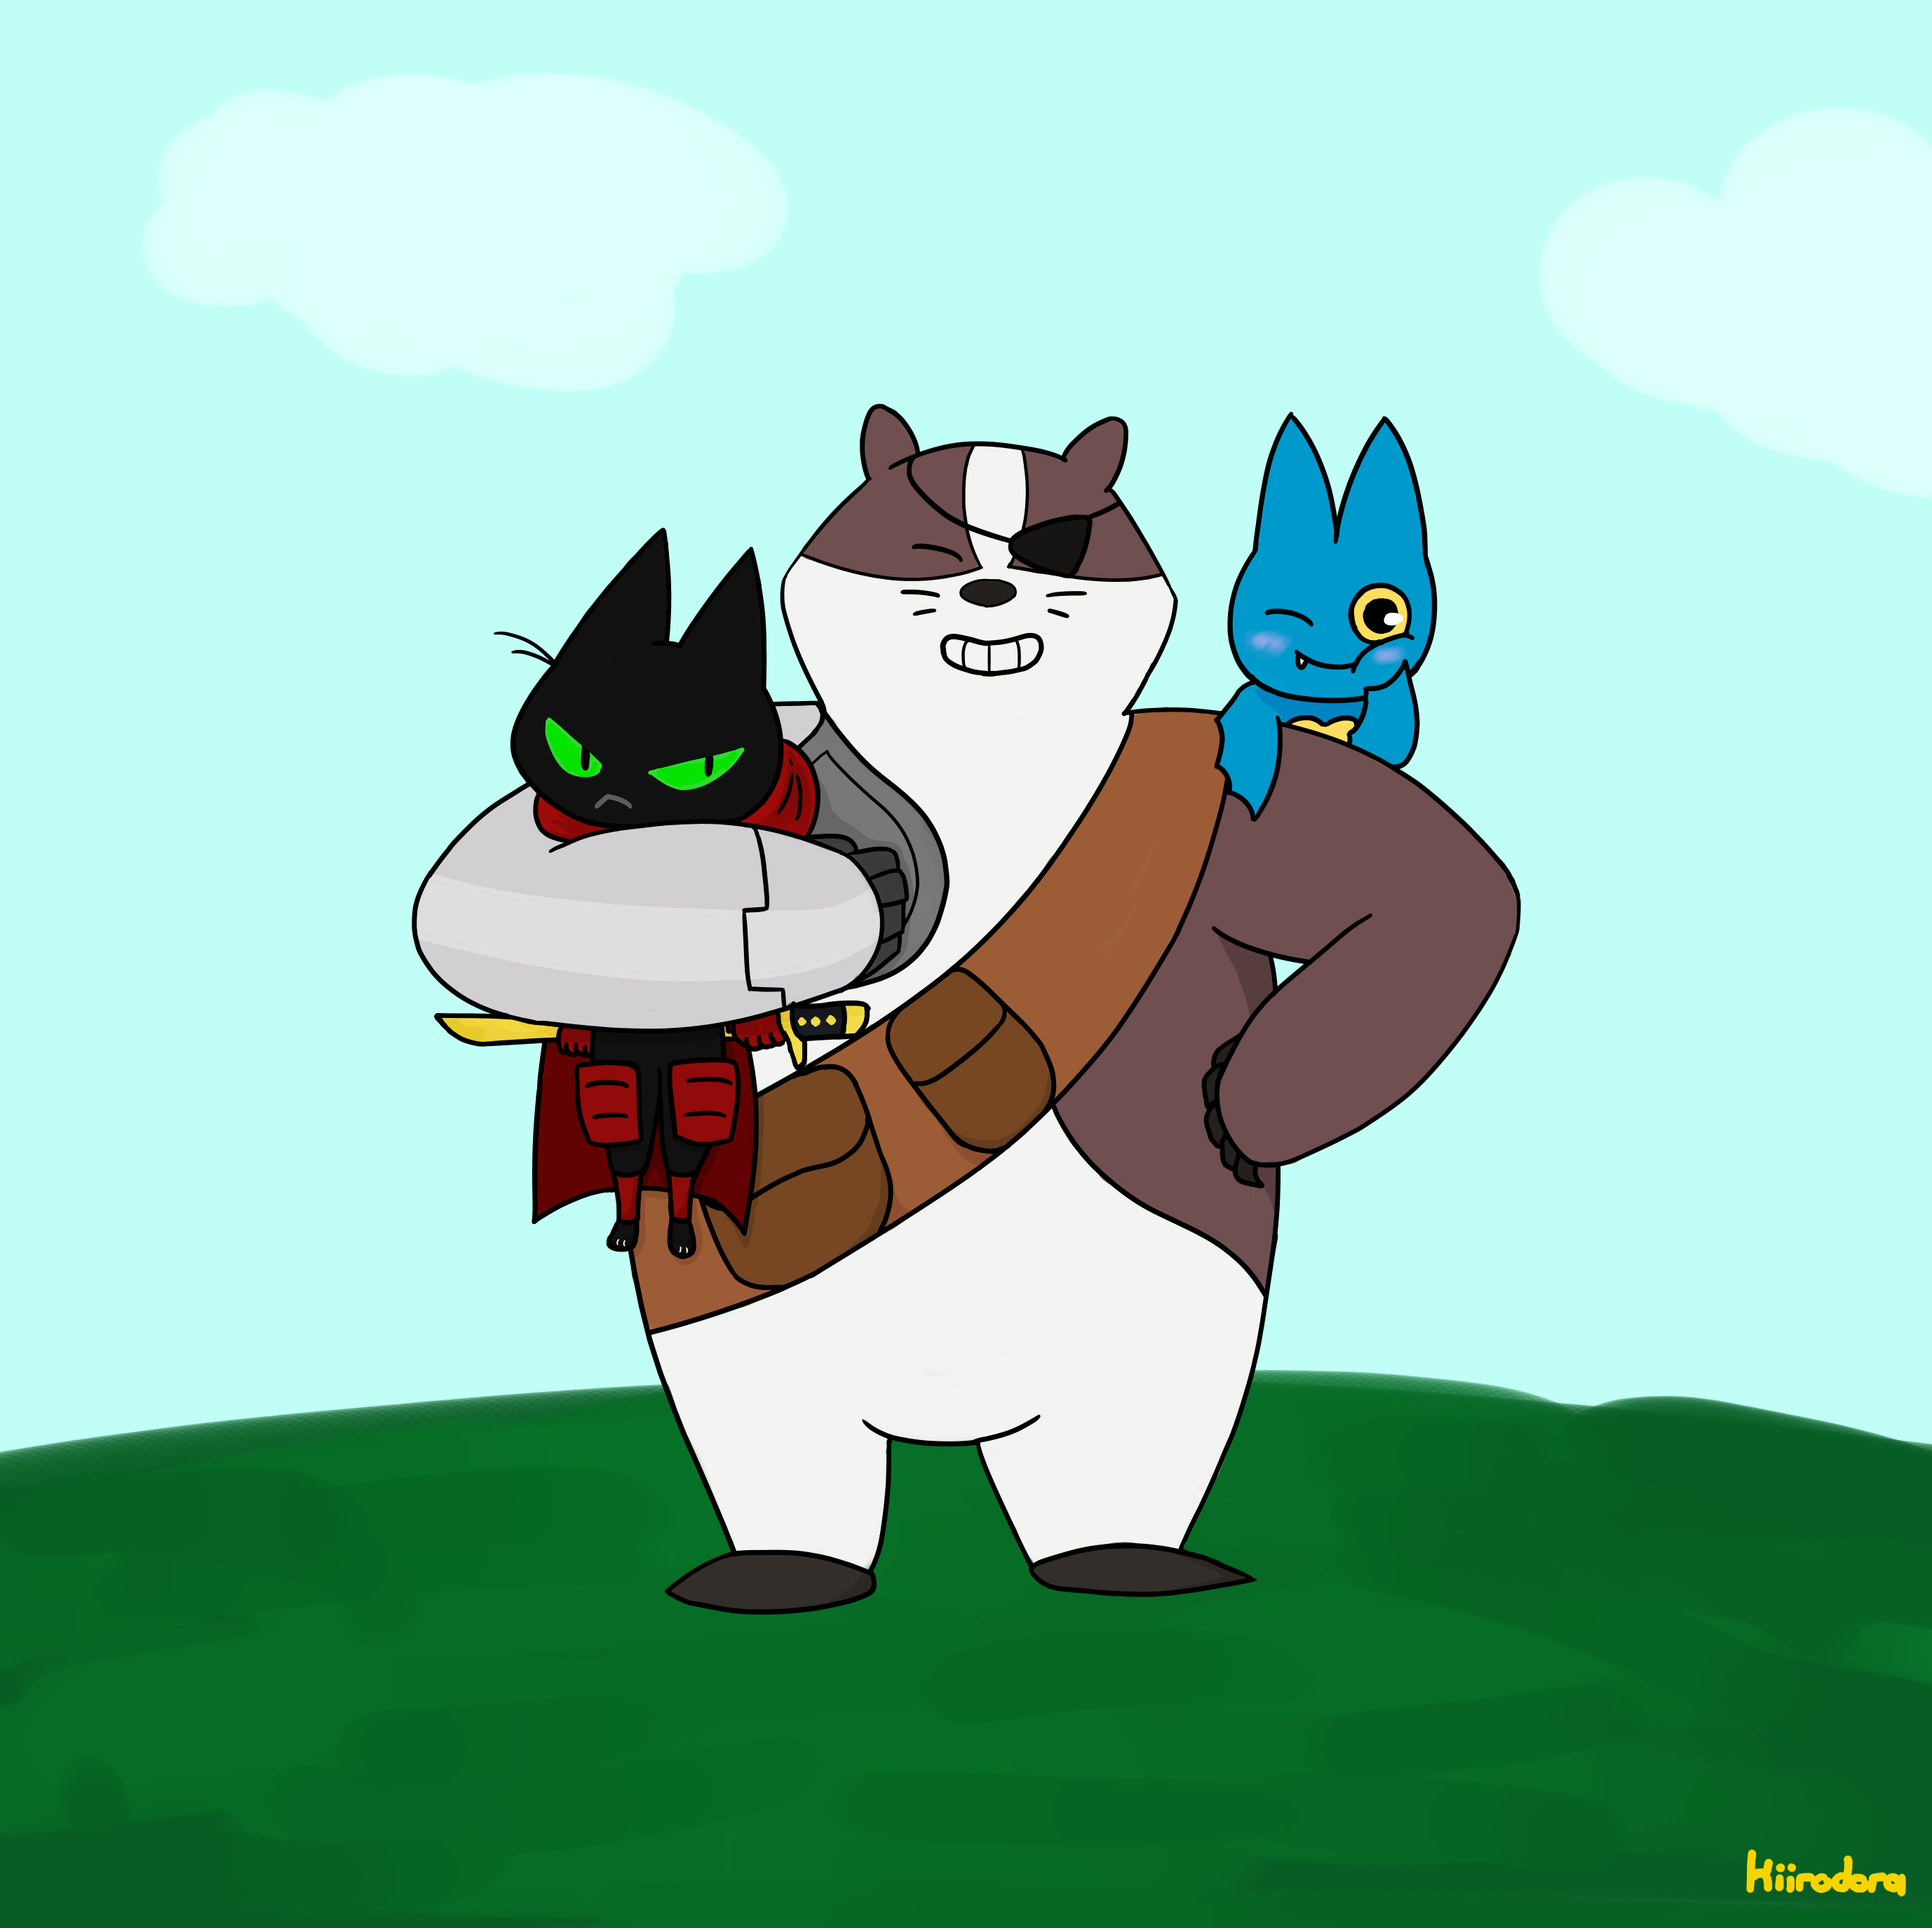 Maomao Badgerclops And Adorabat By Kiirodora On Deviantart Check out inspiring examples of adorabat_mao_mao artwork on deviantart, and get inspired by our community of talented artists. maomao badgerclops and adorabat by